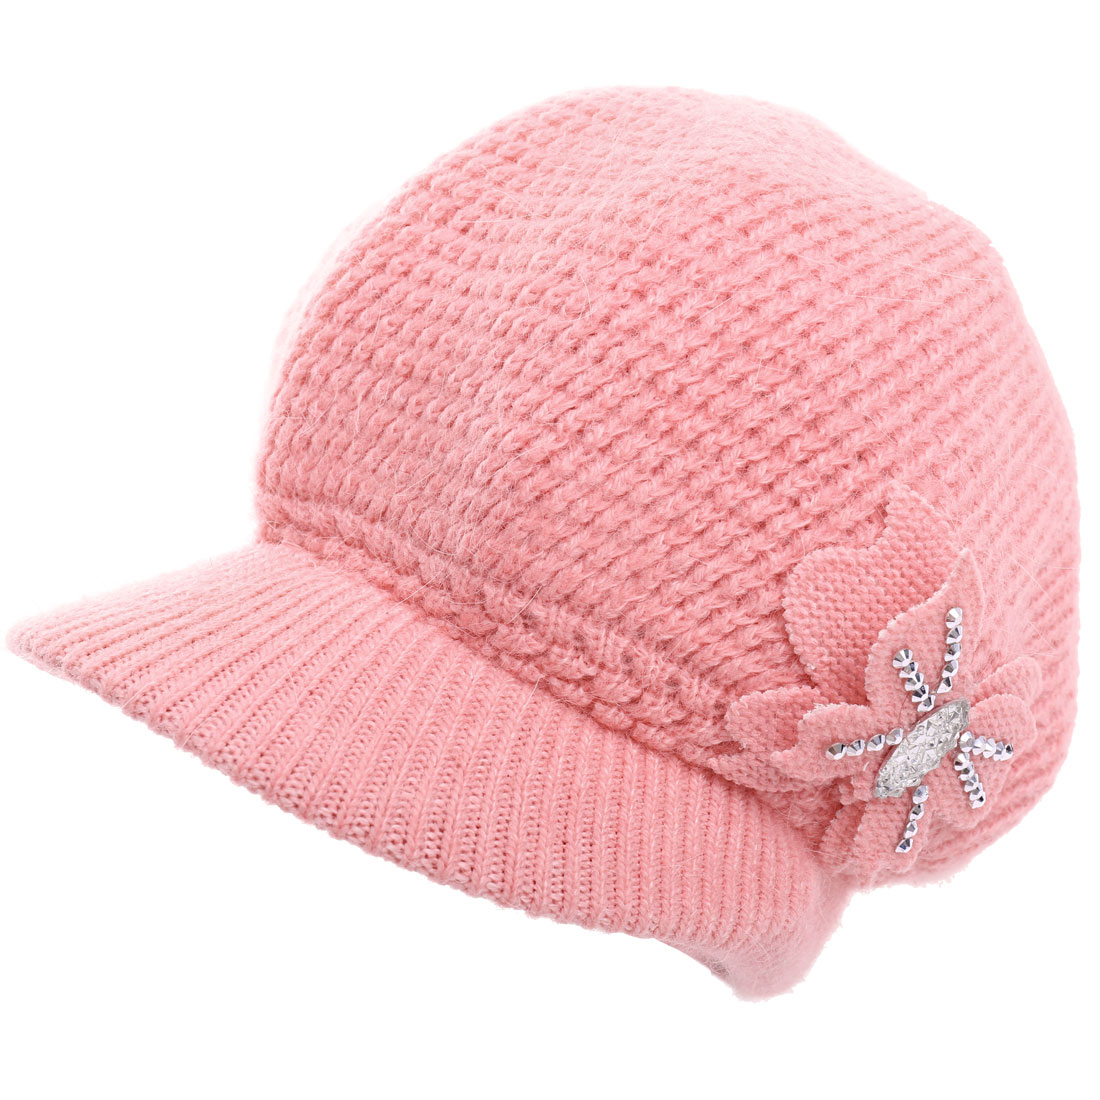 Ladies Textured Design Stretchy Winter Wearing Knitted Hat Pink